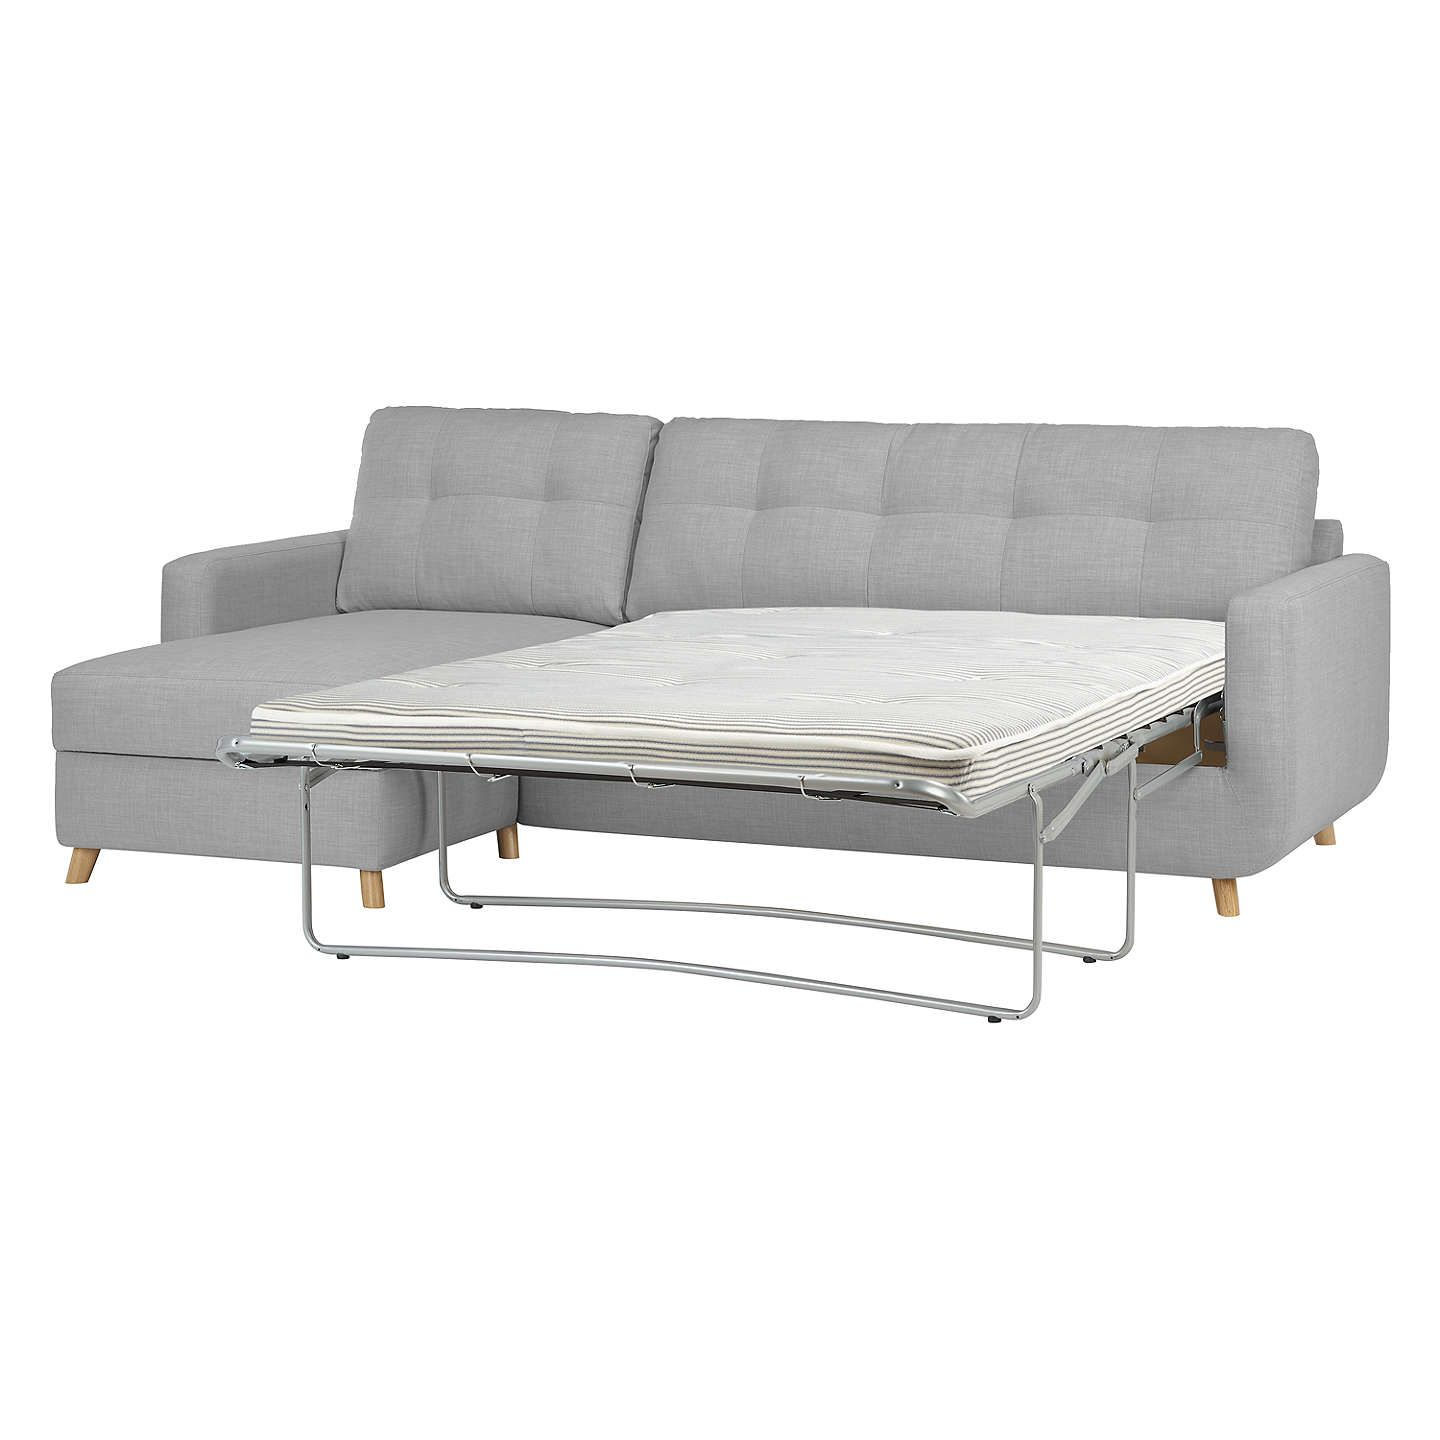 John Lewis & Partners Barbican LHF Chaise Sofa Bed with Storage ...